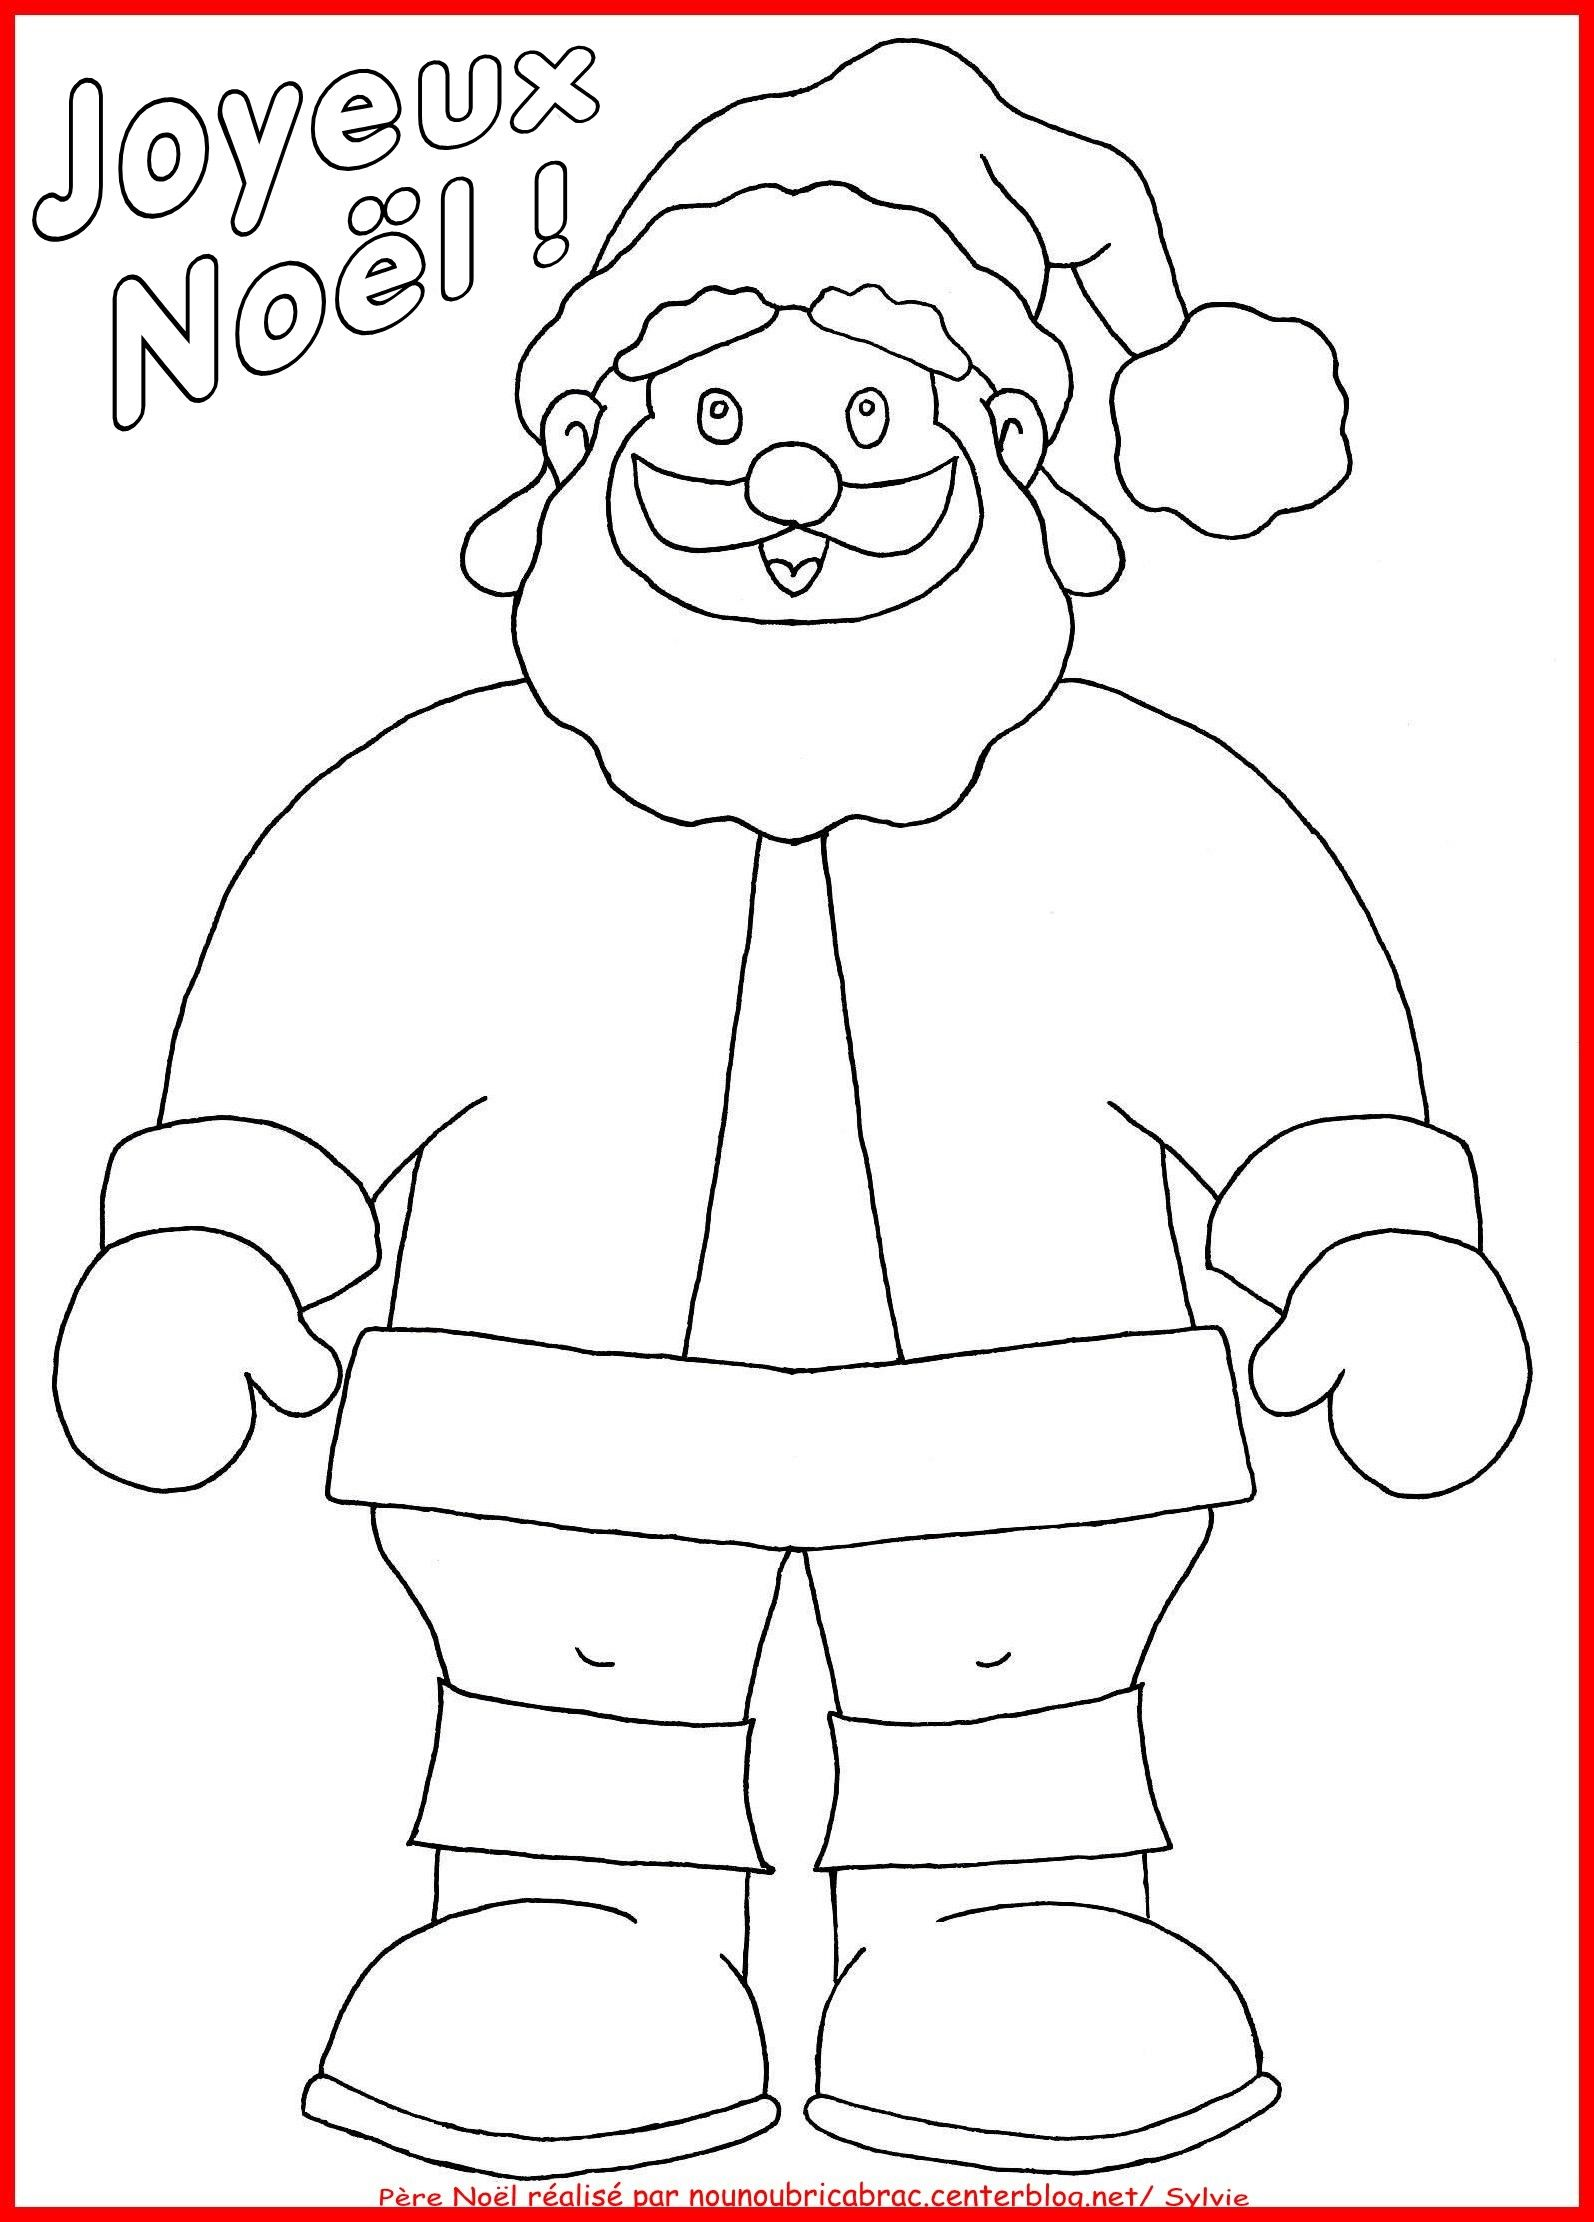 P re no l un coloriage gabarit pinterest p re for Puzzle a colorier gratuit